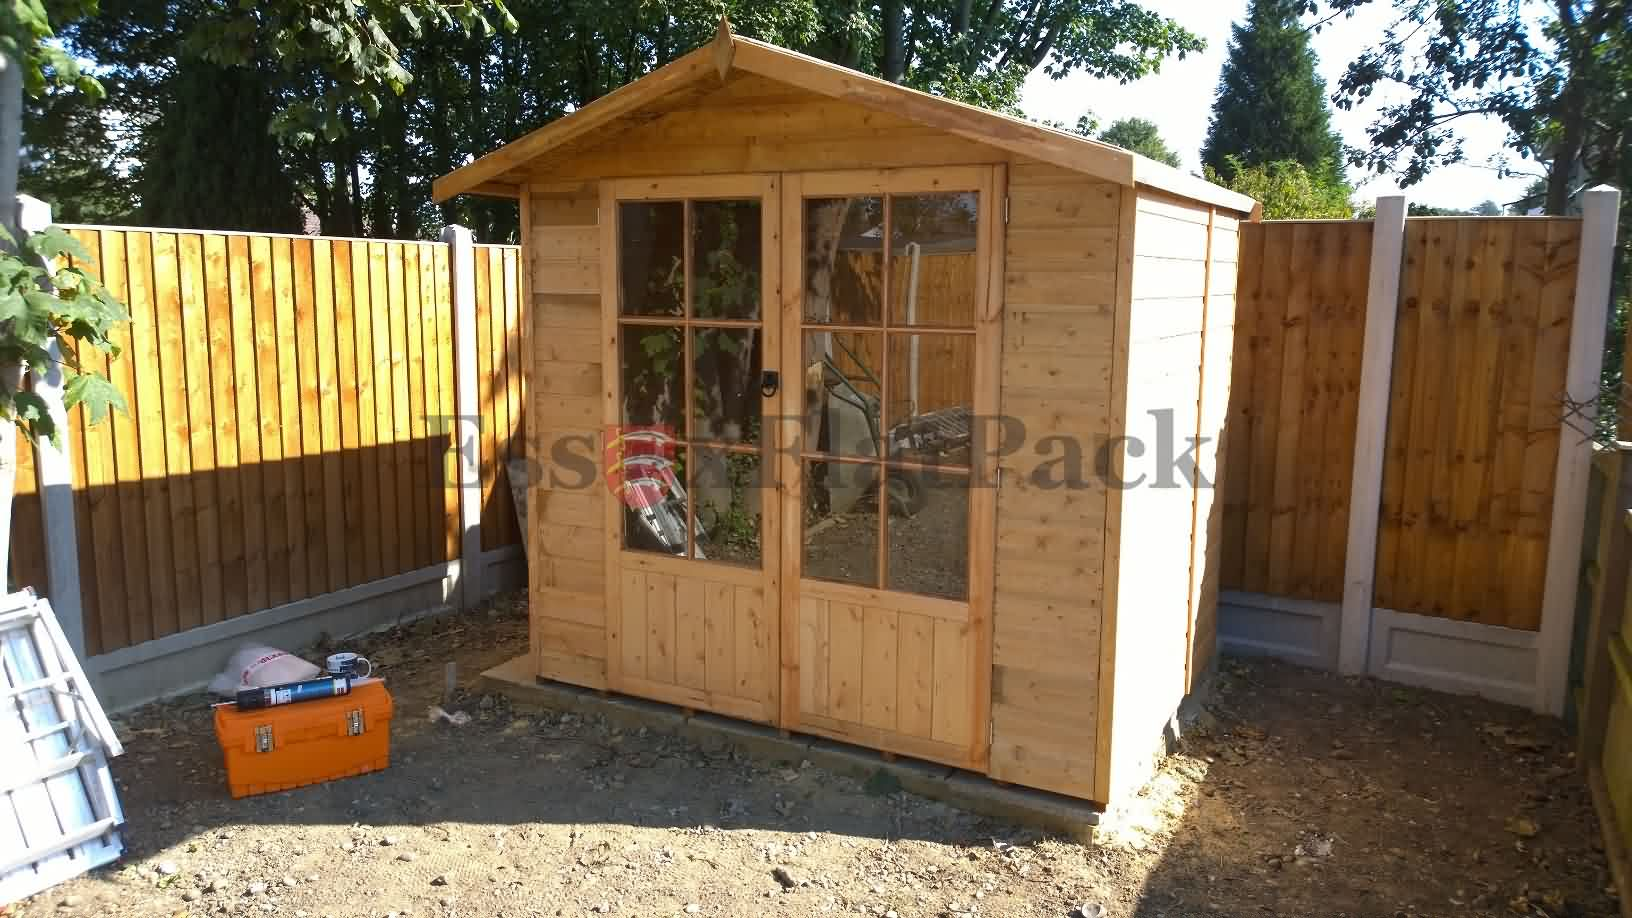 shed-installation-and-assembly-service-62.jpg